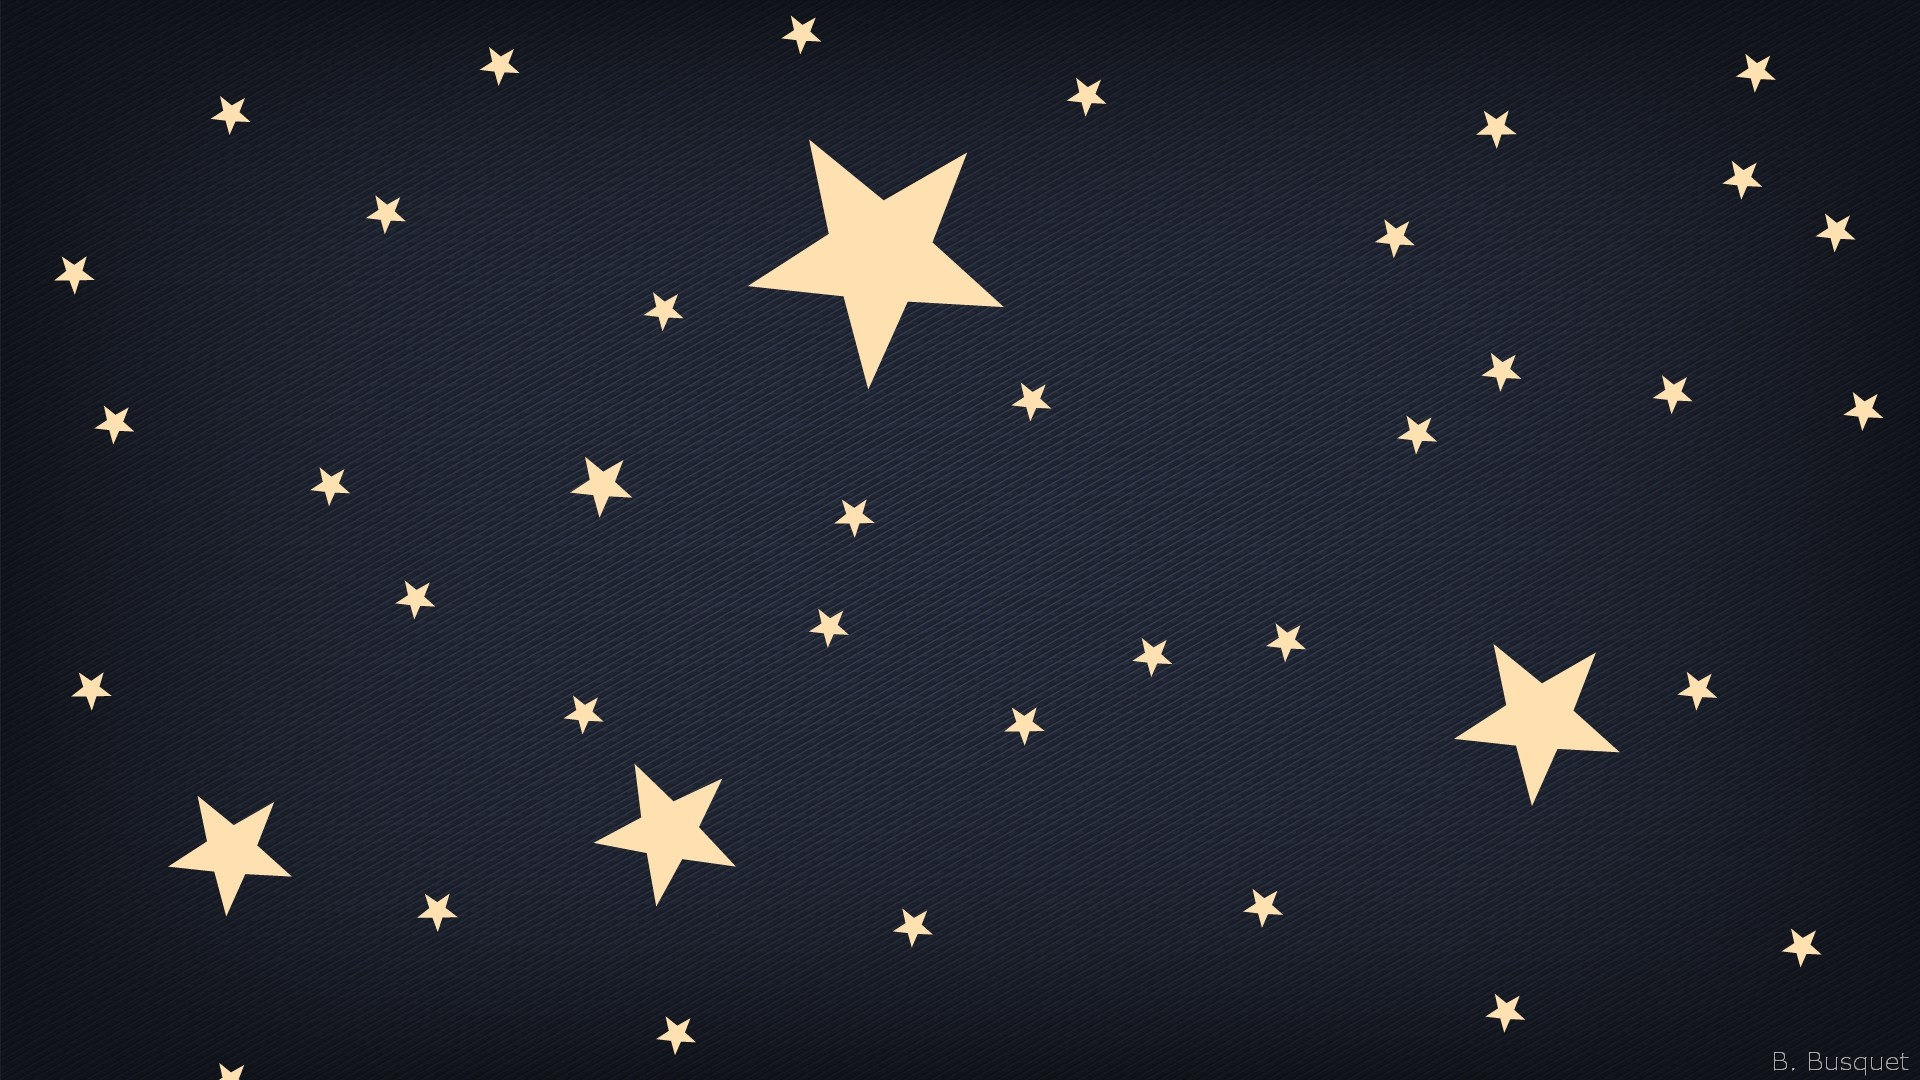 Res: 1920x1080, Star Wallpapers 18 - 1920 X 1080